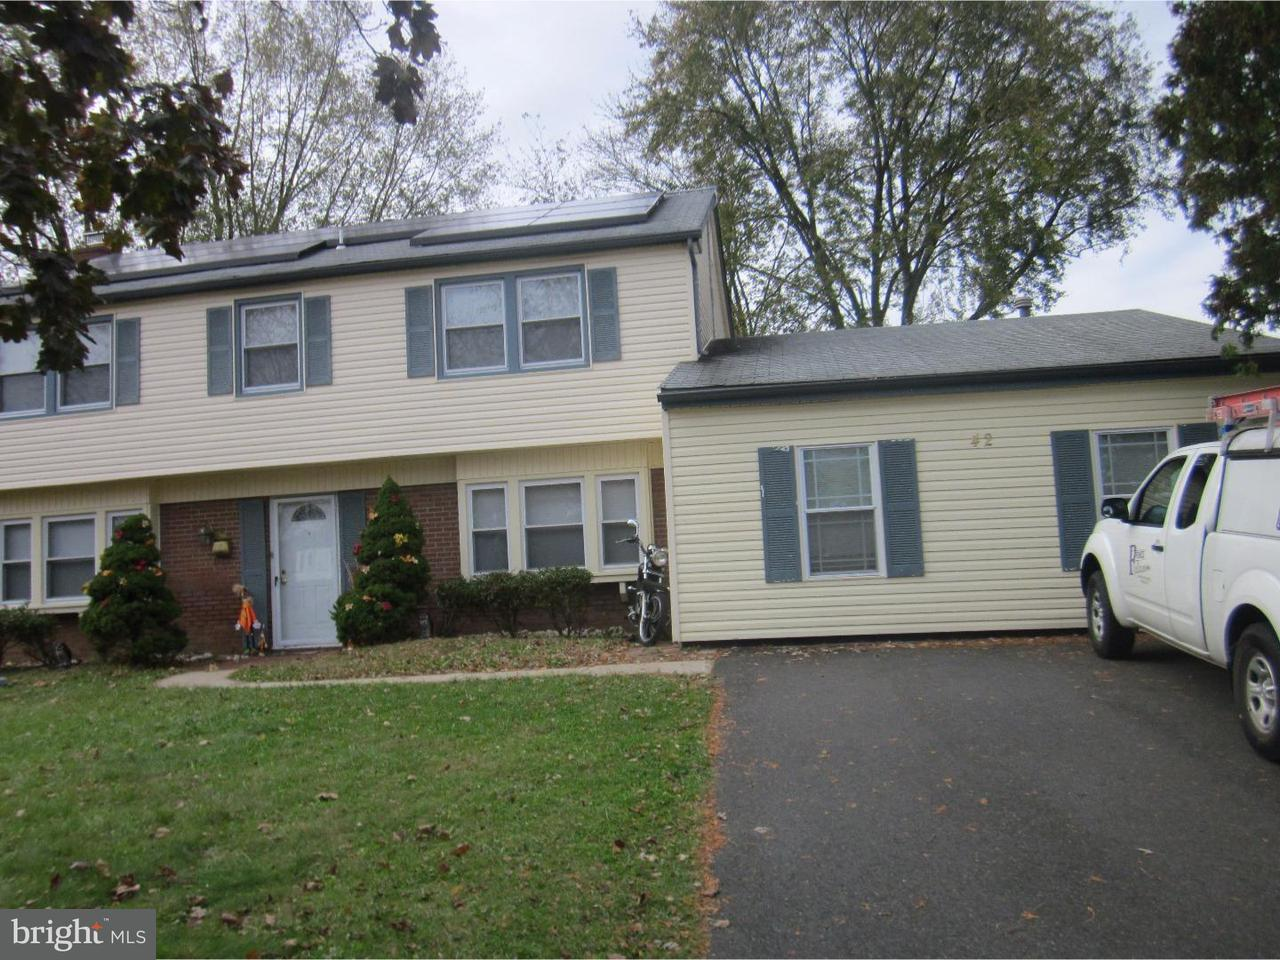 Single Family Home for Rent at 42 NORTHGATE Lane Willingboro, New Jersey 08046 United States